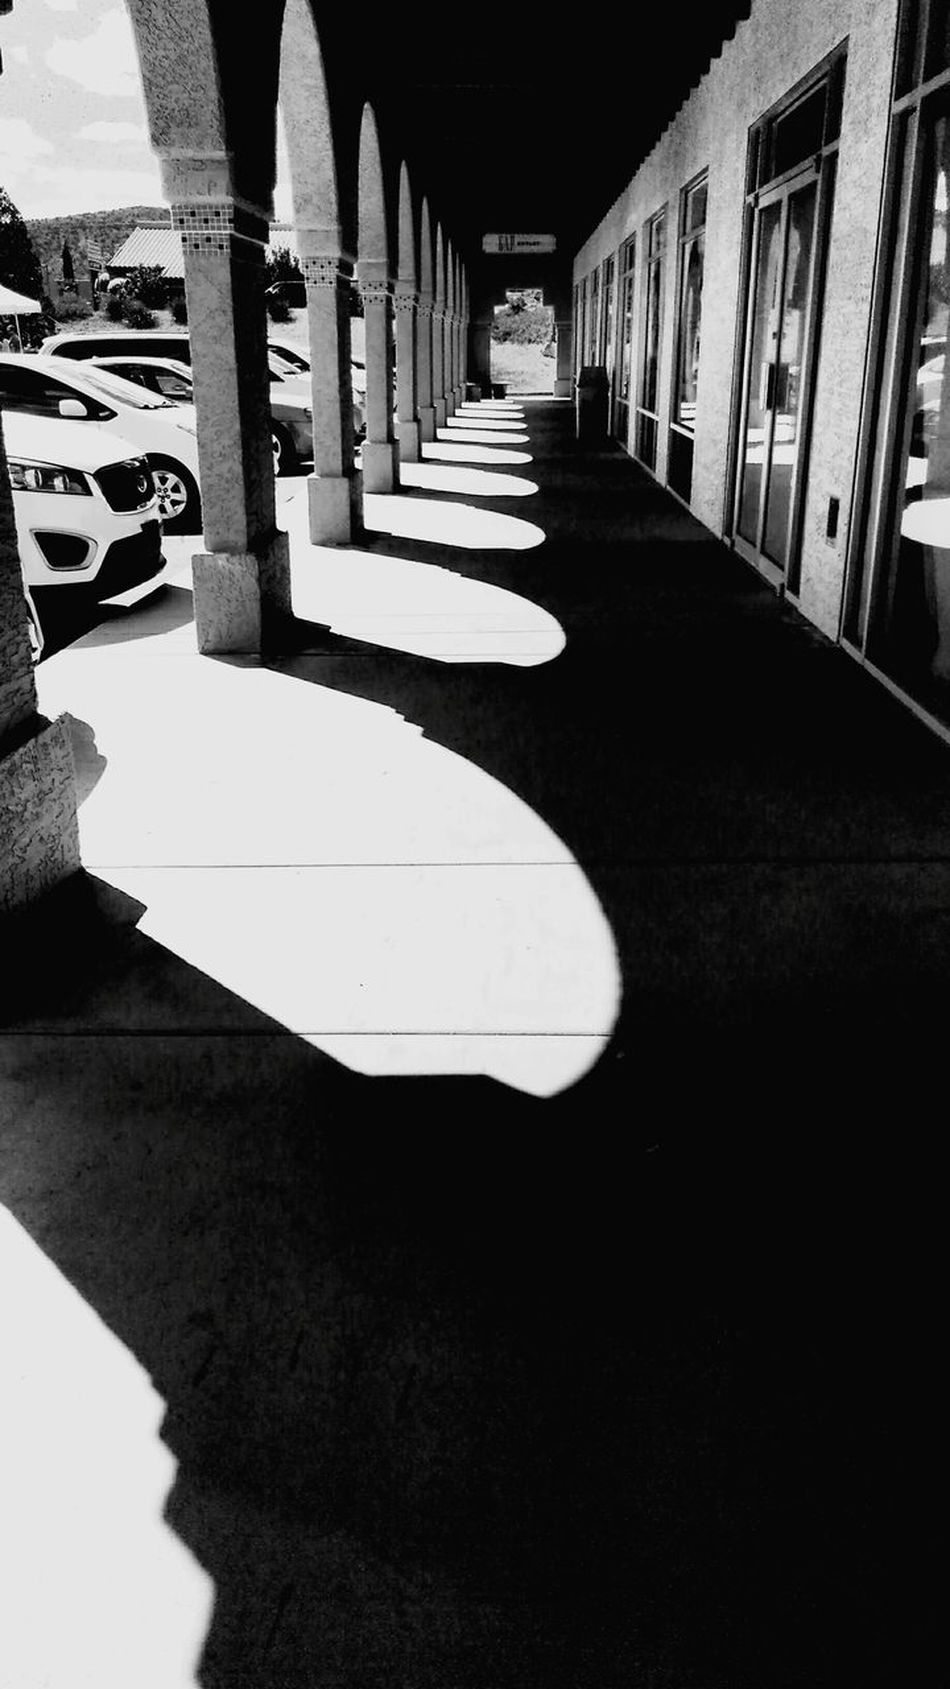 Shadow No People The Way Forward Outdoors Day Blackandwhite Welcome To Black